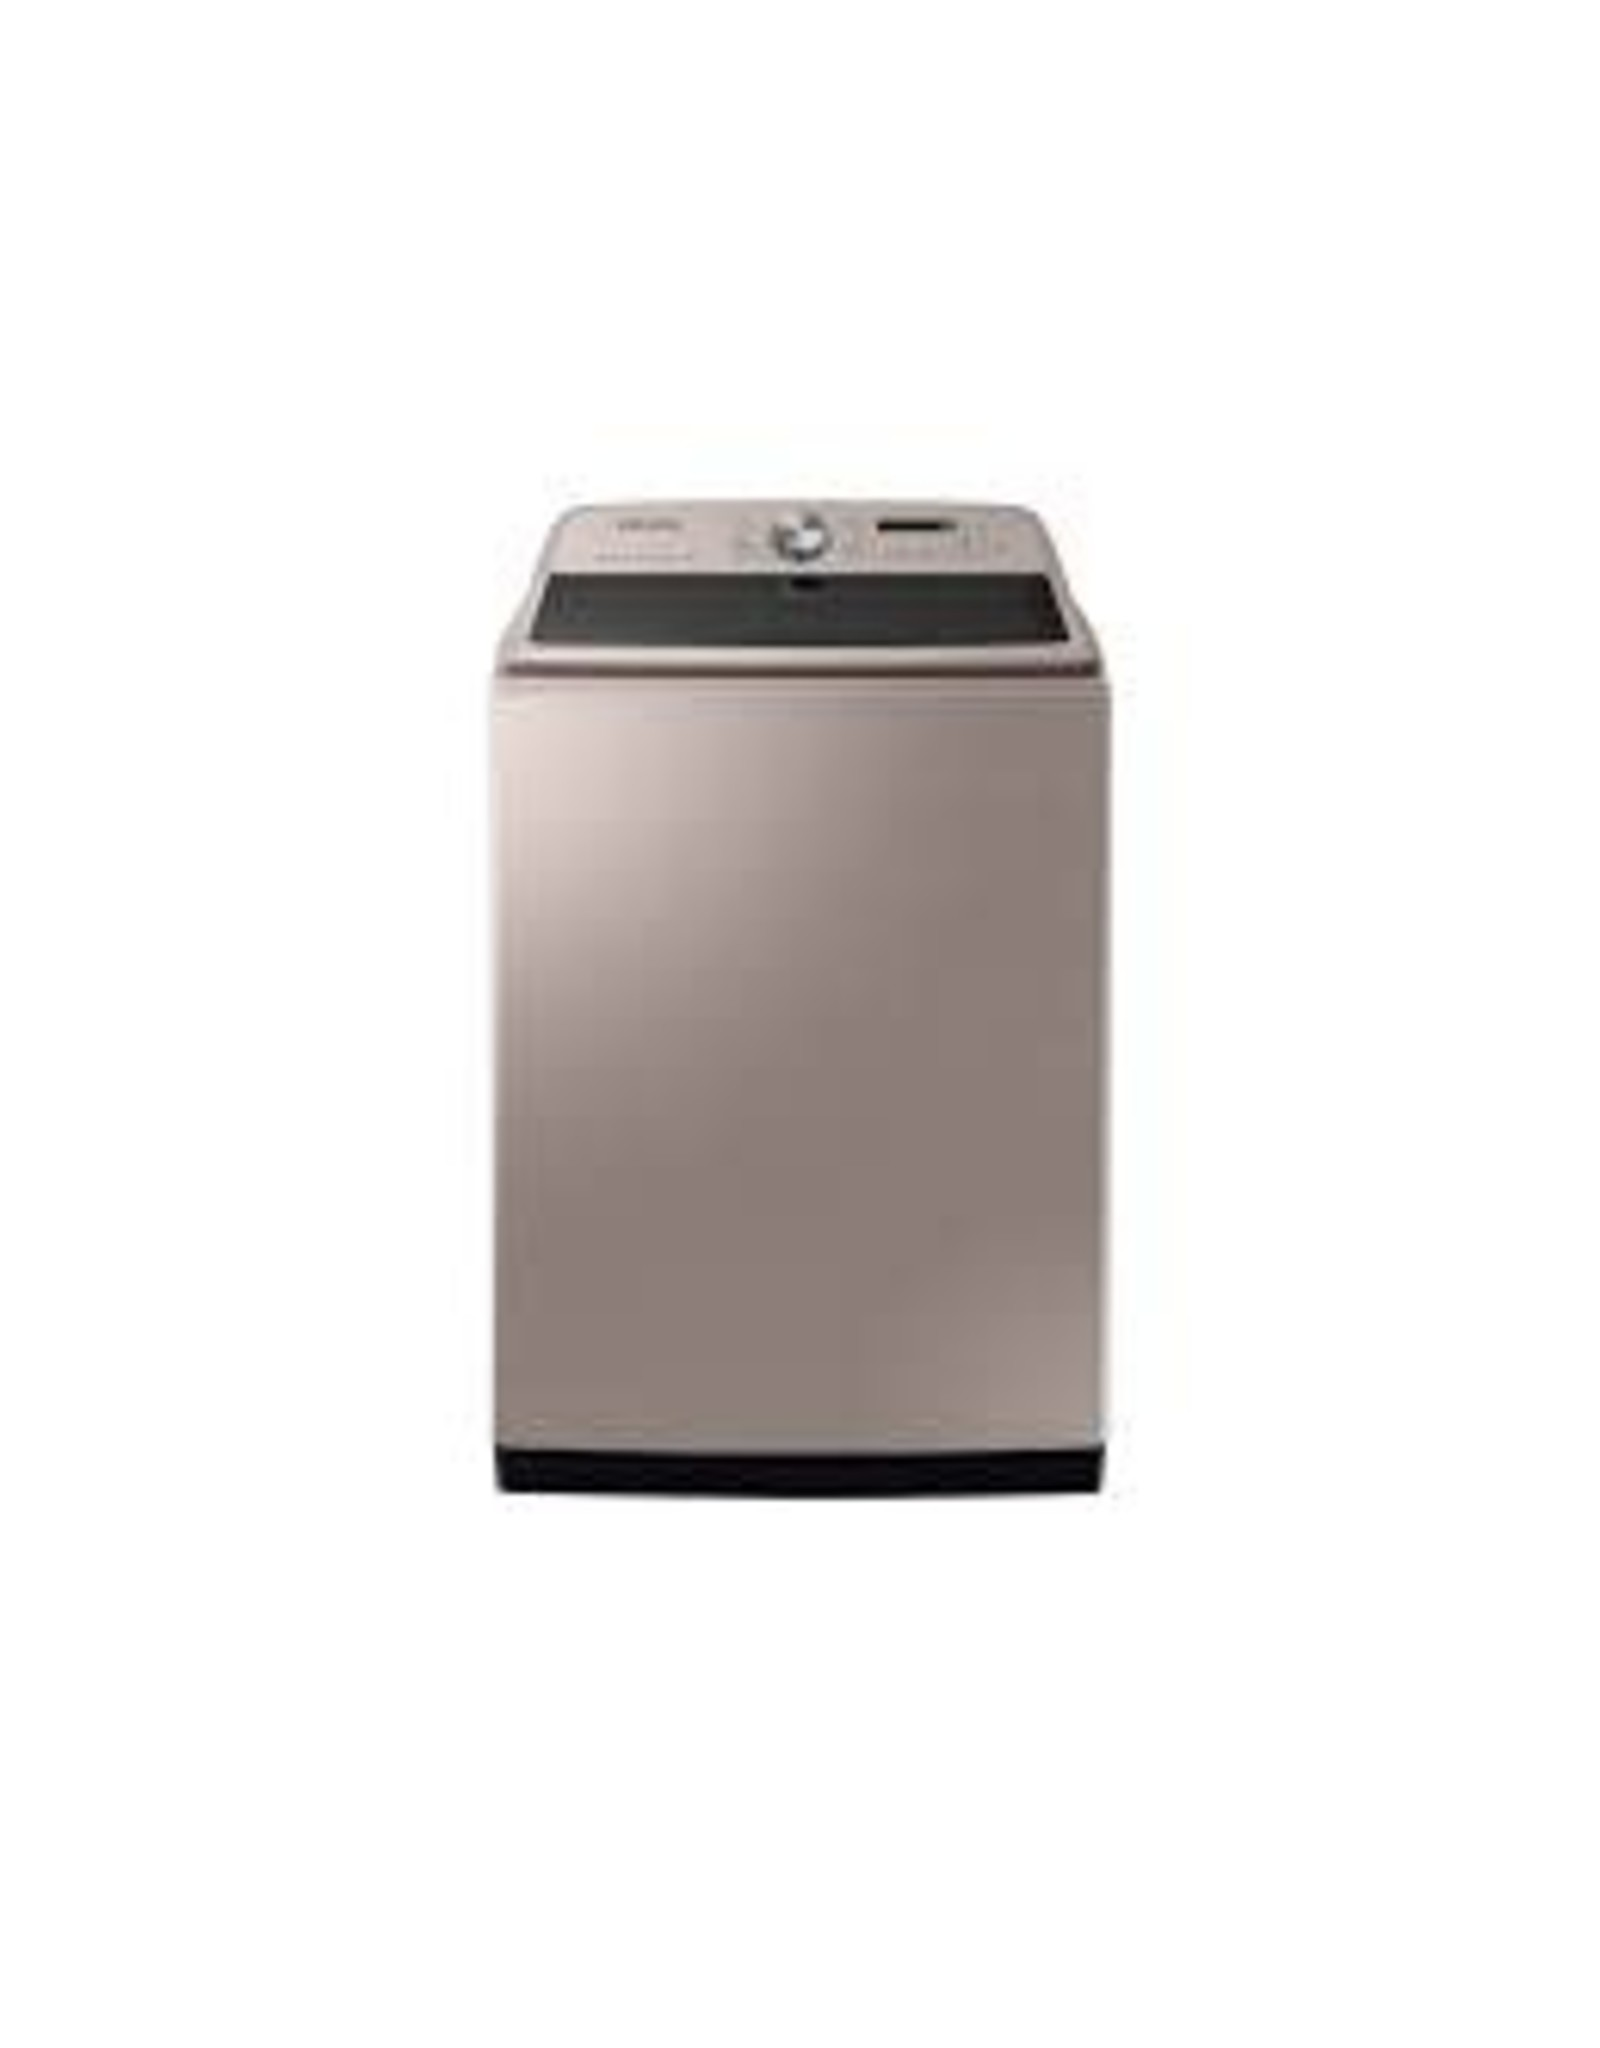 SAMSUNG WA54R7600AC Samsung 5.4 cu. ft. High-Efficiency Champagne Top Load Washing Machine with Super Speed and Steam, ENERGY STAR